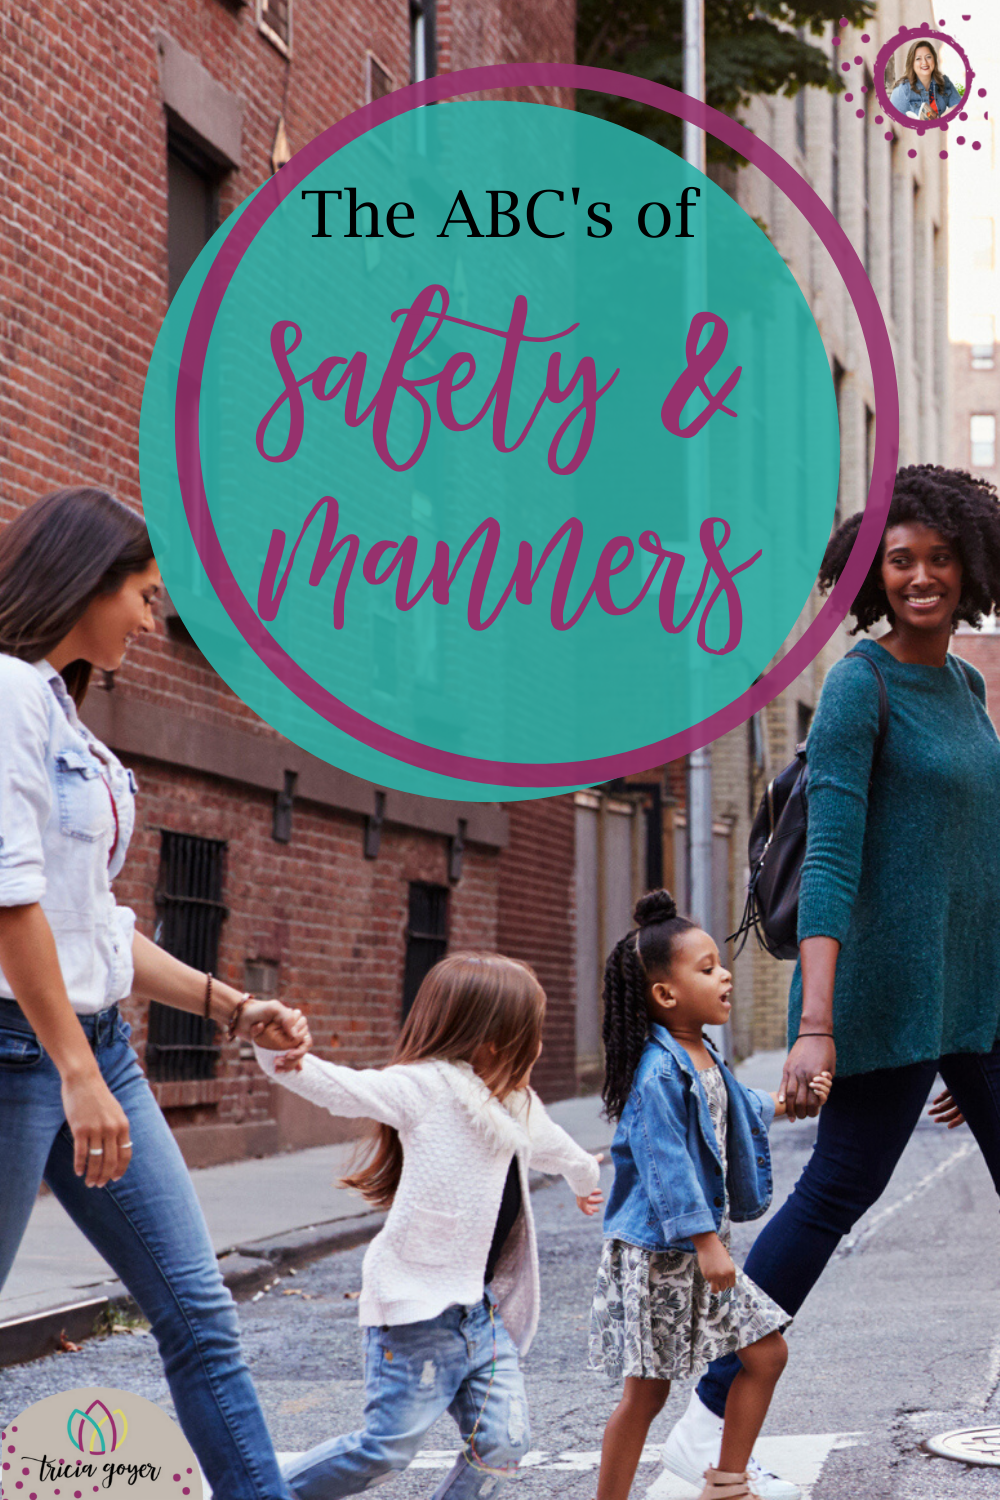 Have you taught you kids the ABCs of safety and manners? One of the biggest mistakes I've made as a mom was to expect what I haven't taught. I'd take my kids out and expect them to know not to ask the lady sitting next to us at the park for part of her lunch. Or expect them to know that they shouldn't run and scream in a store or touch in an art museum. How WOULD my kids know that if I didn't teach them? Teaching and training are part of being a parent.Here are a few tips for teaching your kids.